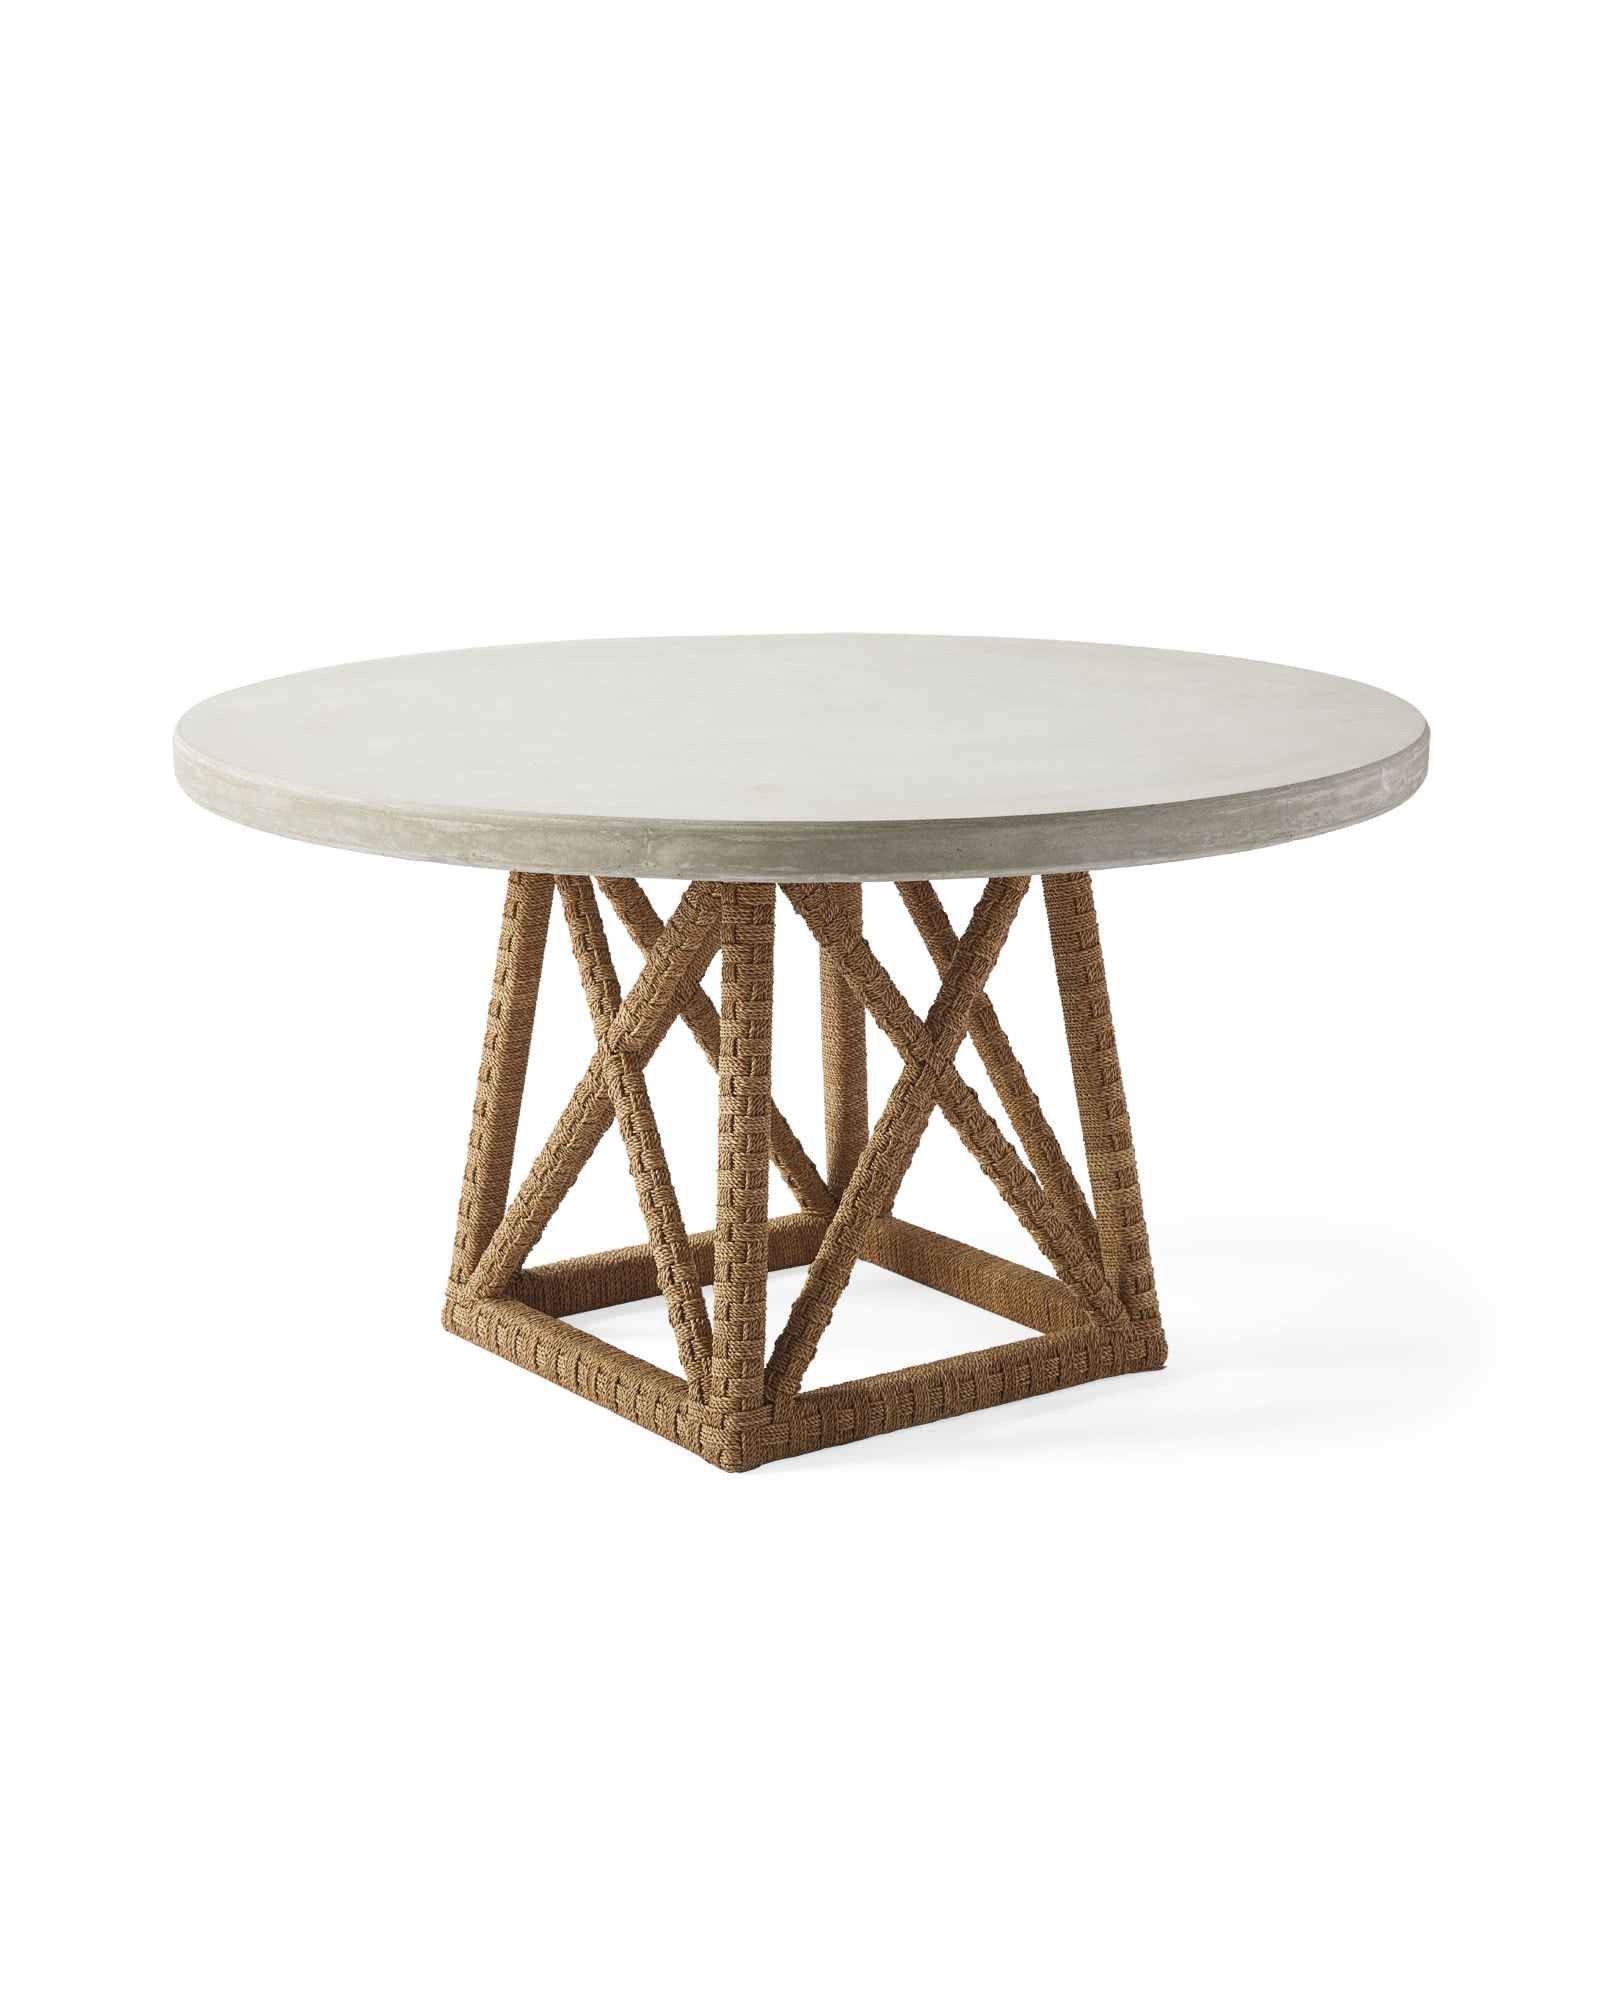 Thornhill Round Dining Table Dining Table Round Dining Table Round Dining [ 2000 x 1600 Pixel ]